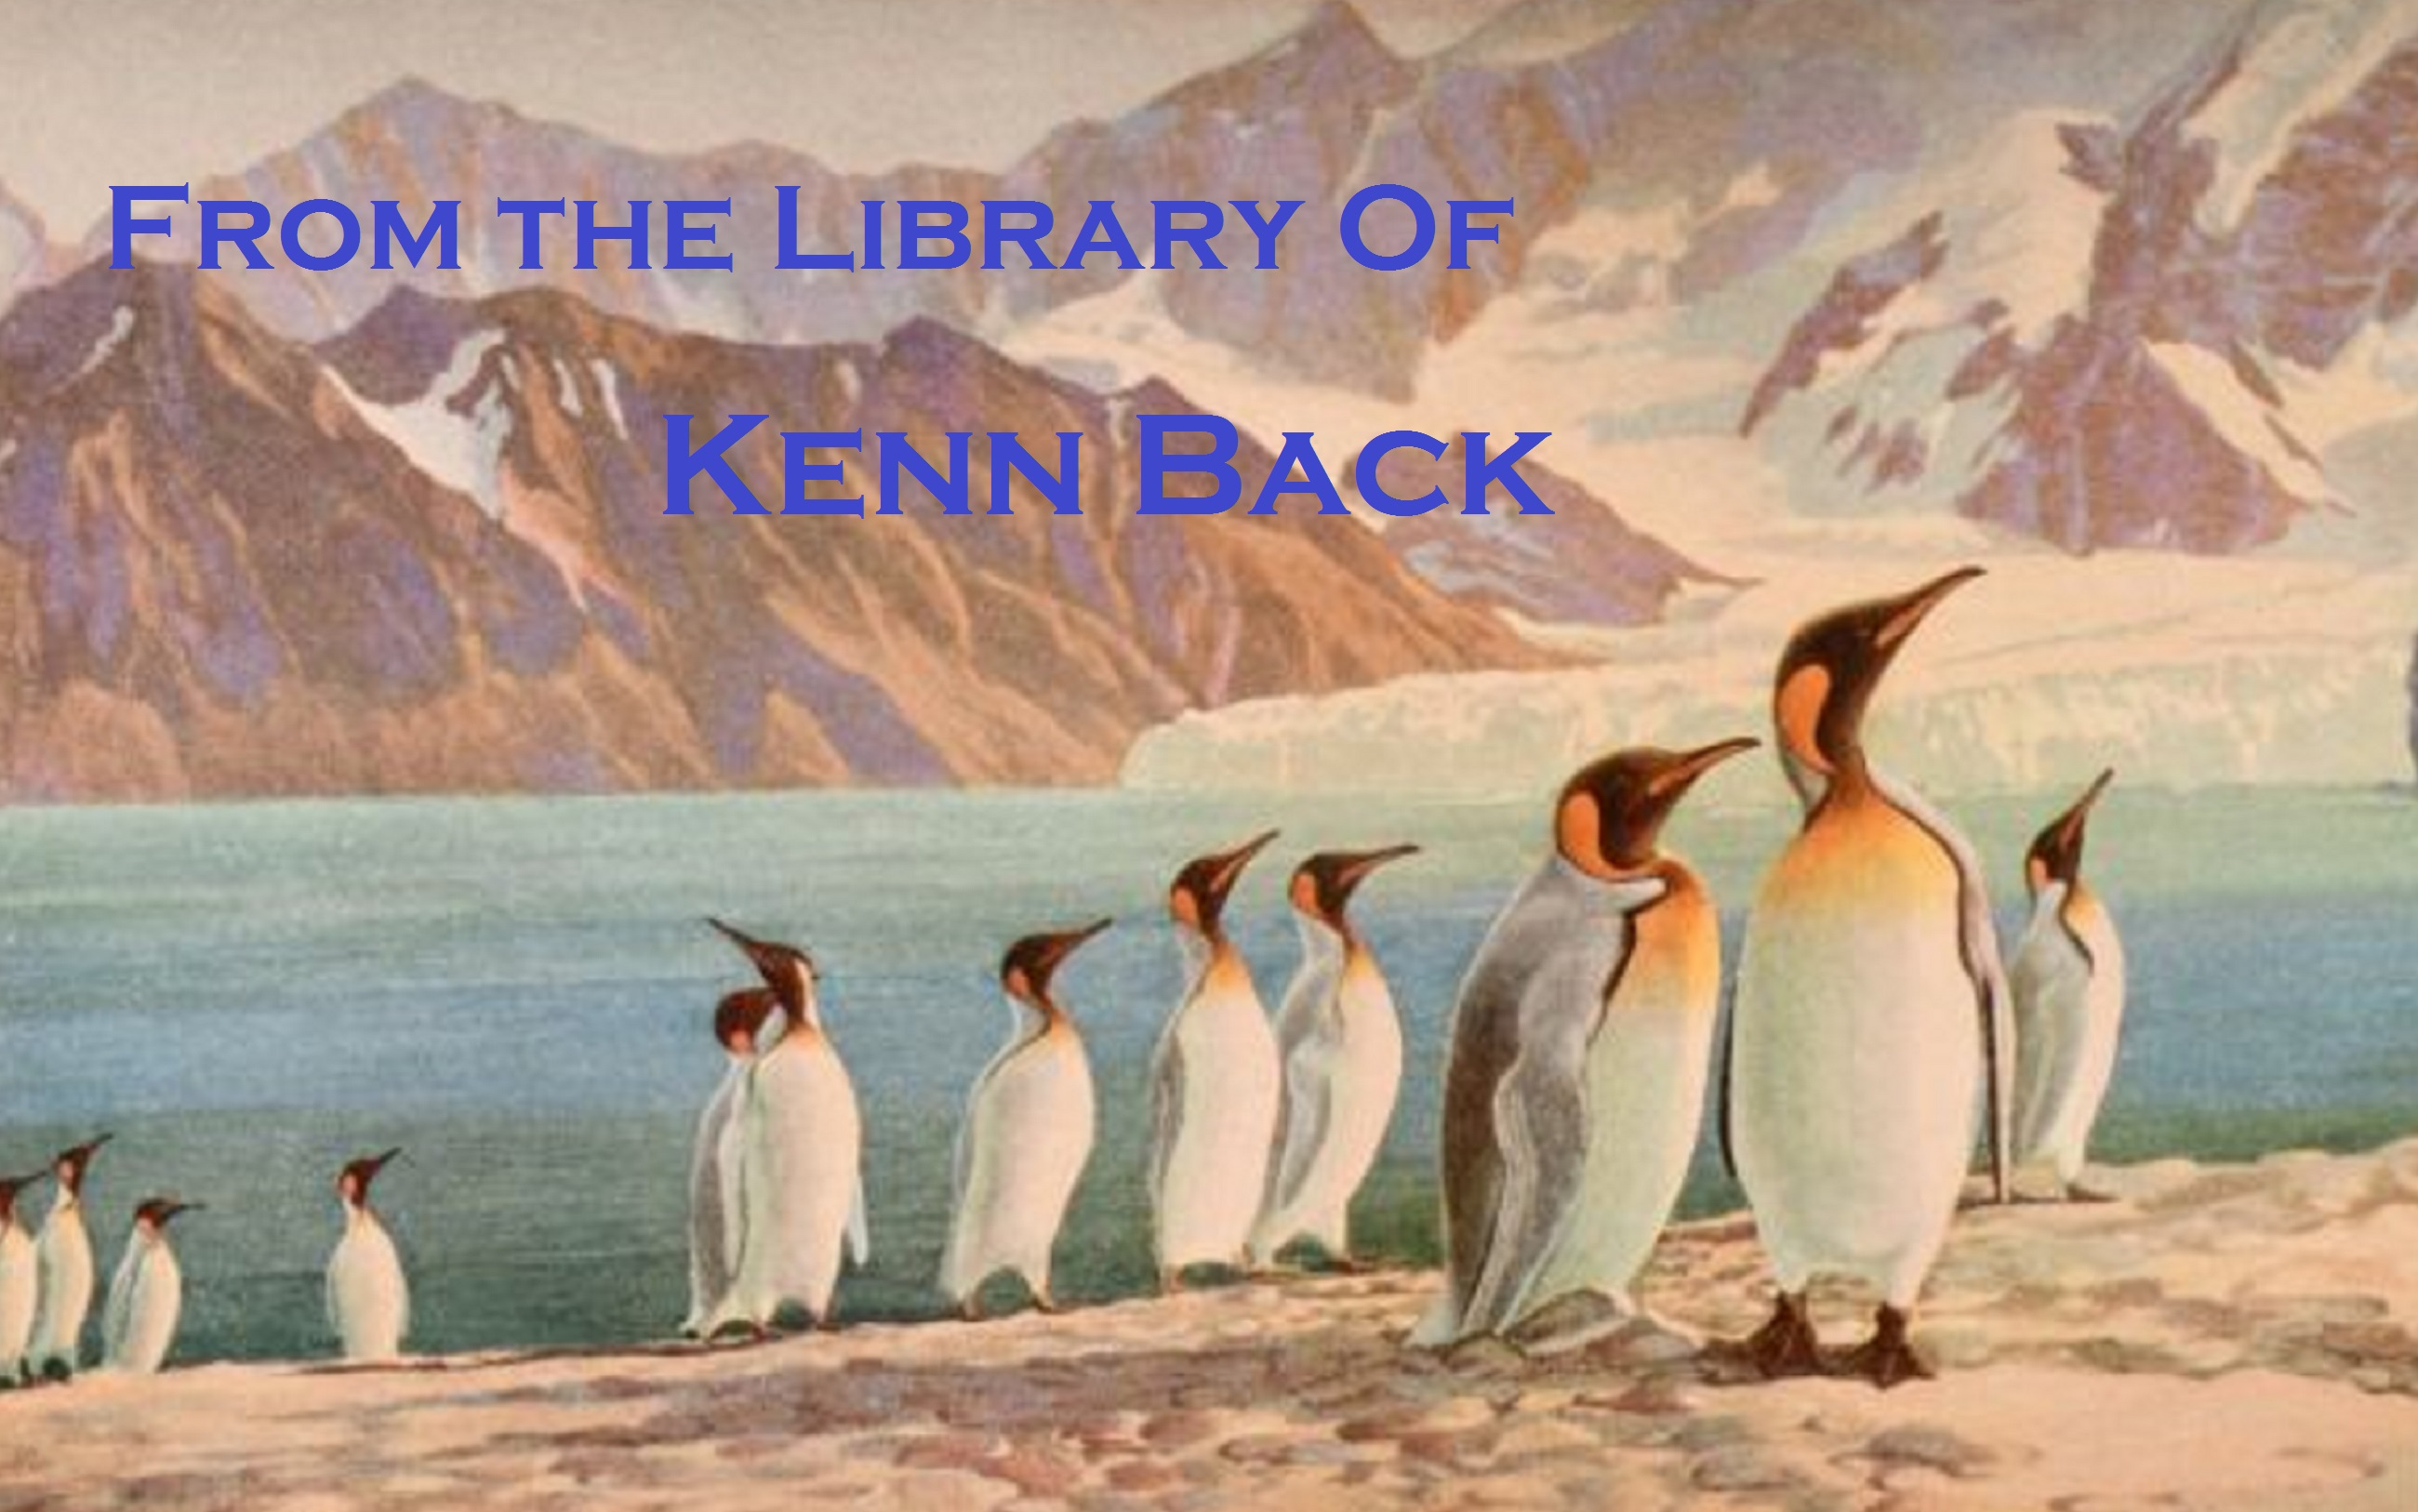 From the Library of Kenn Back, and Beyond